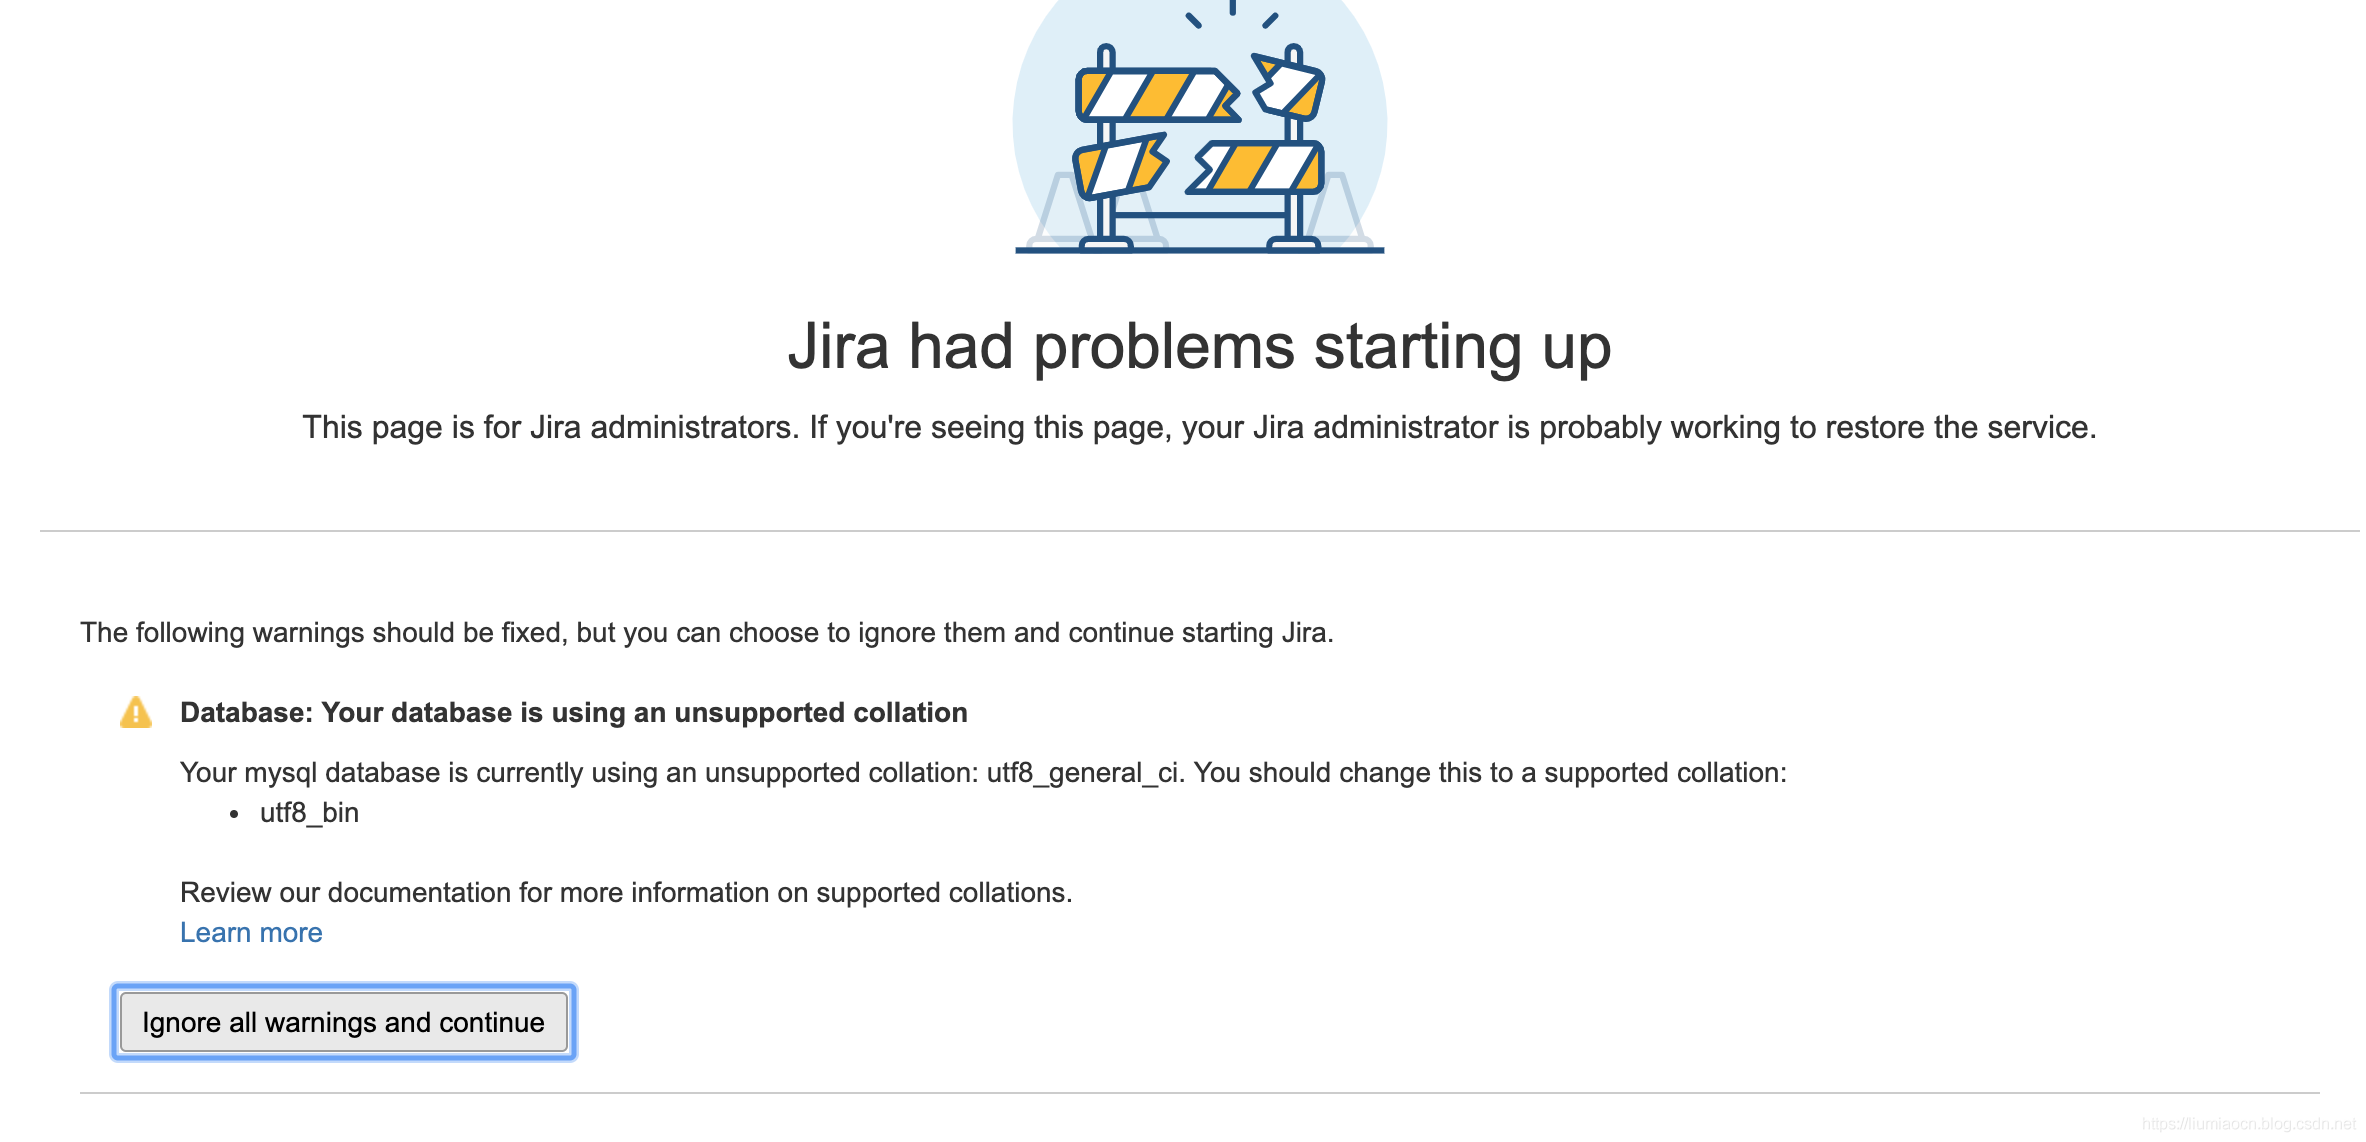 Jira基础:备份恢复时Couldn't connect to your database - 知行